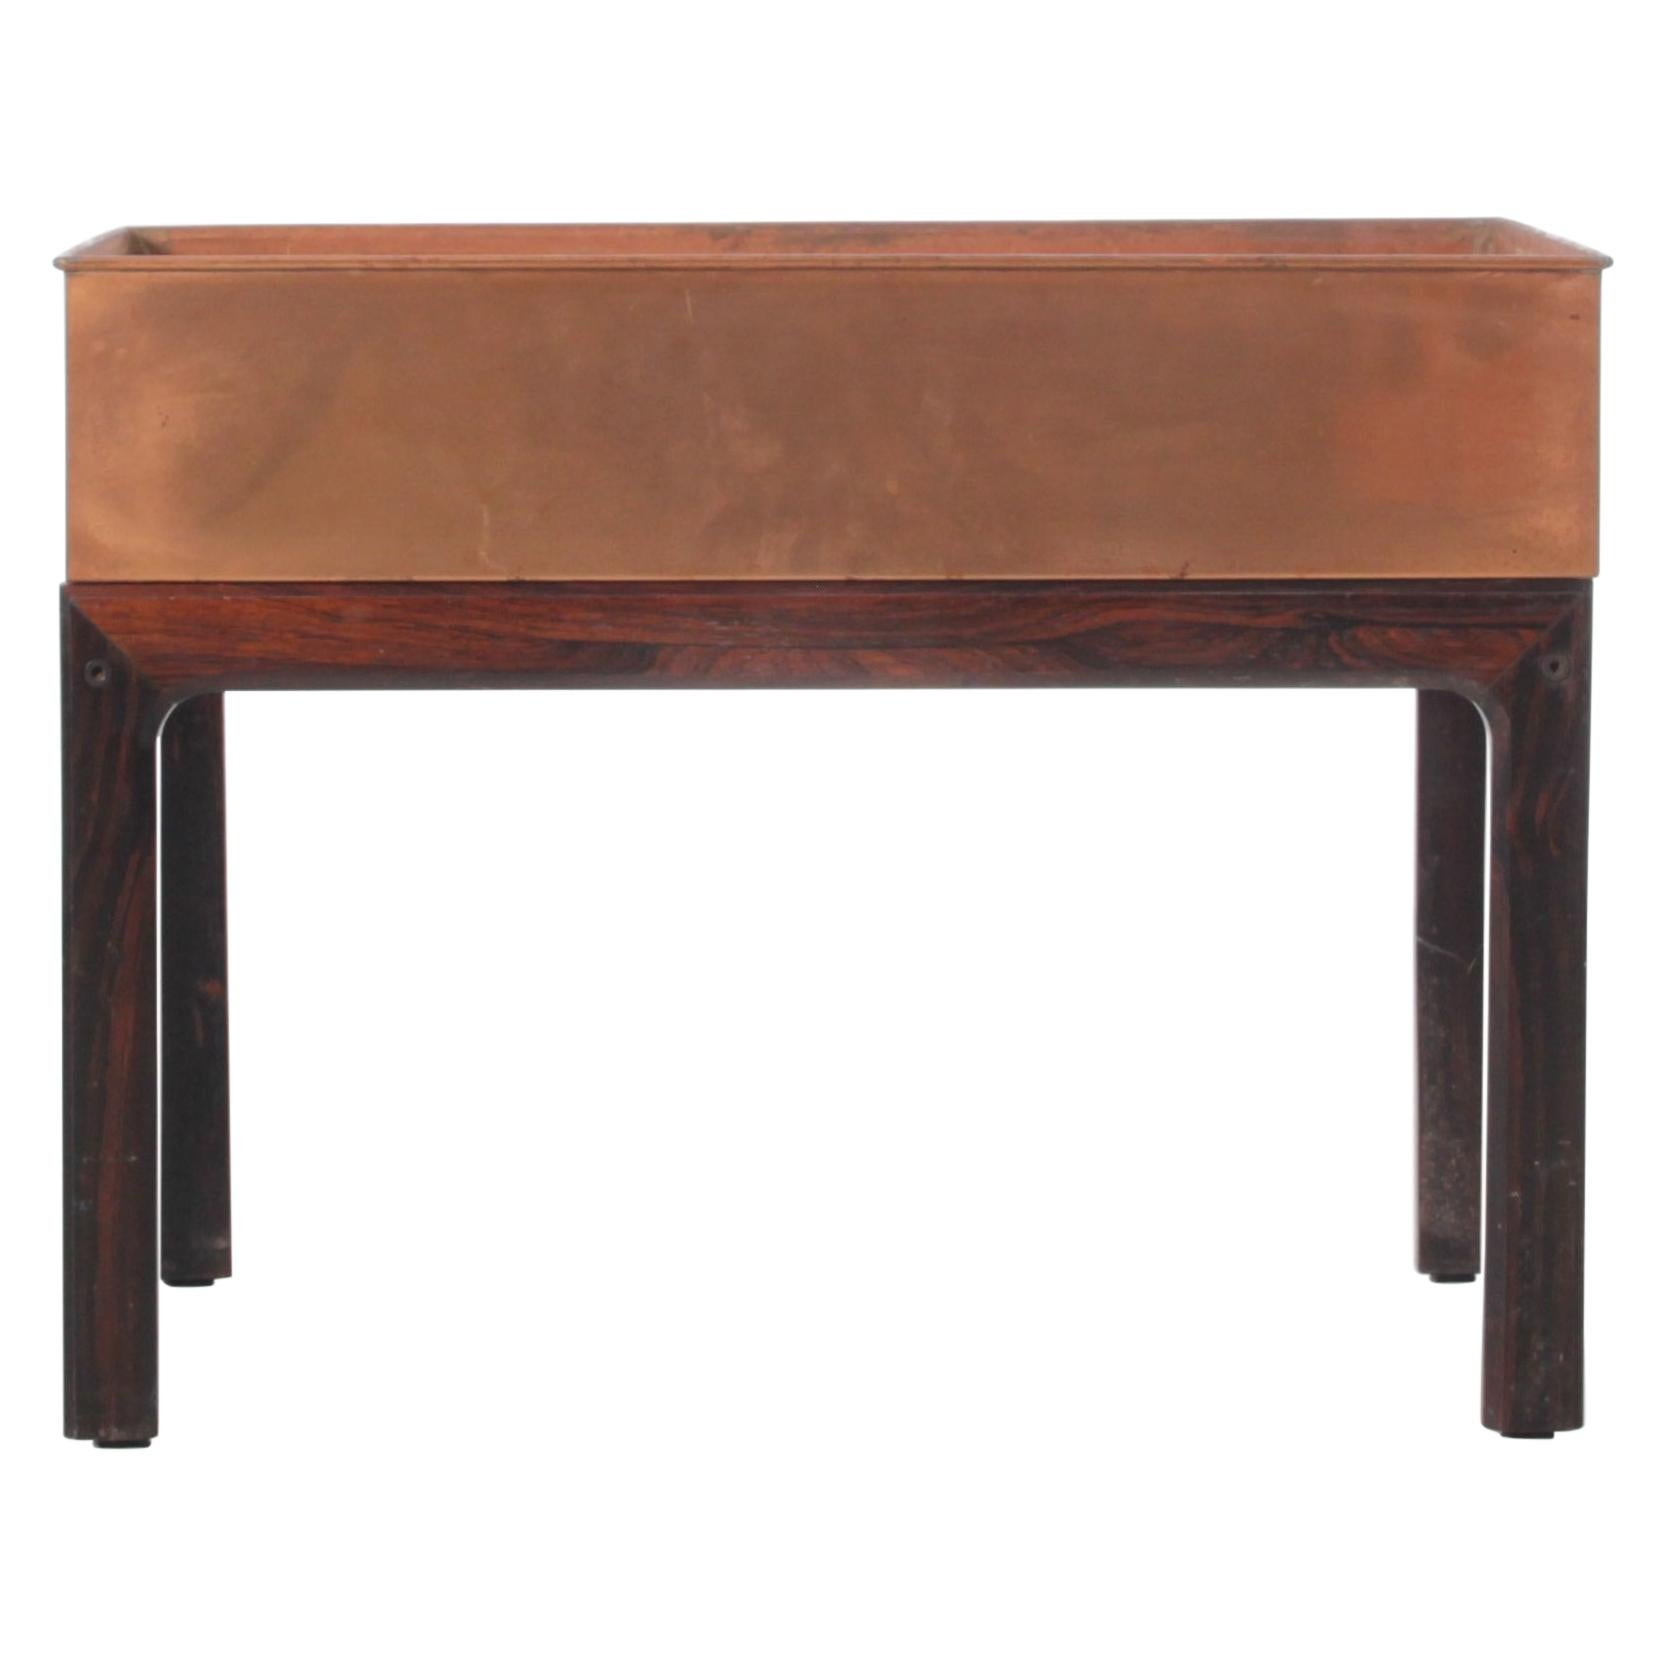 Mid-Century Modern Scandinavian Planter in Rosewood and Copper by Iversen